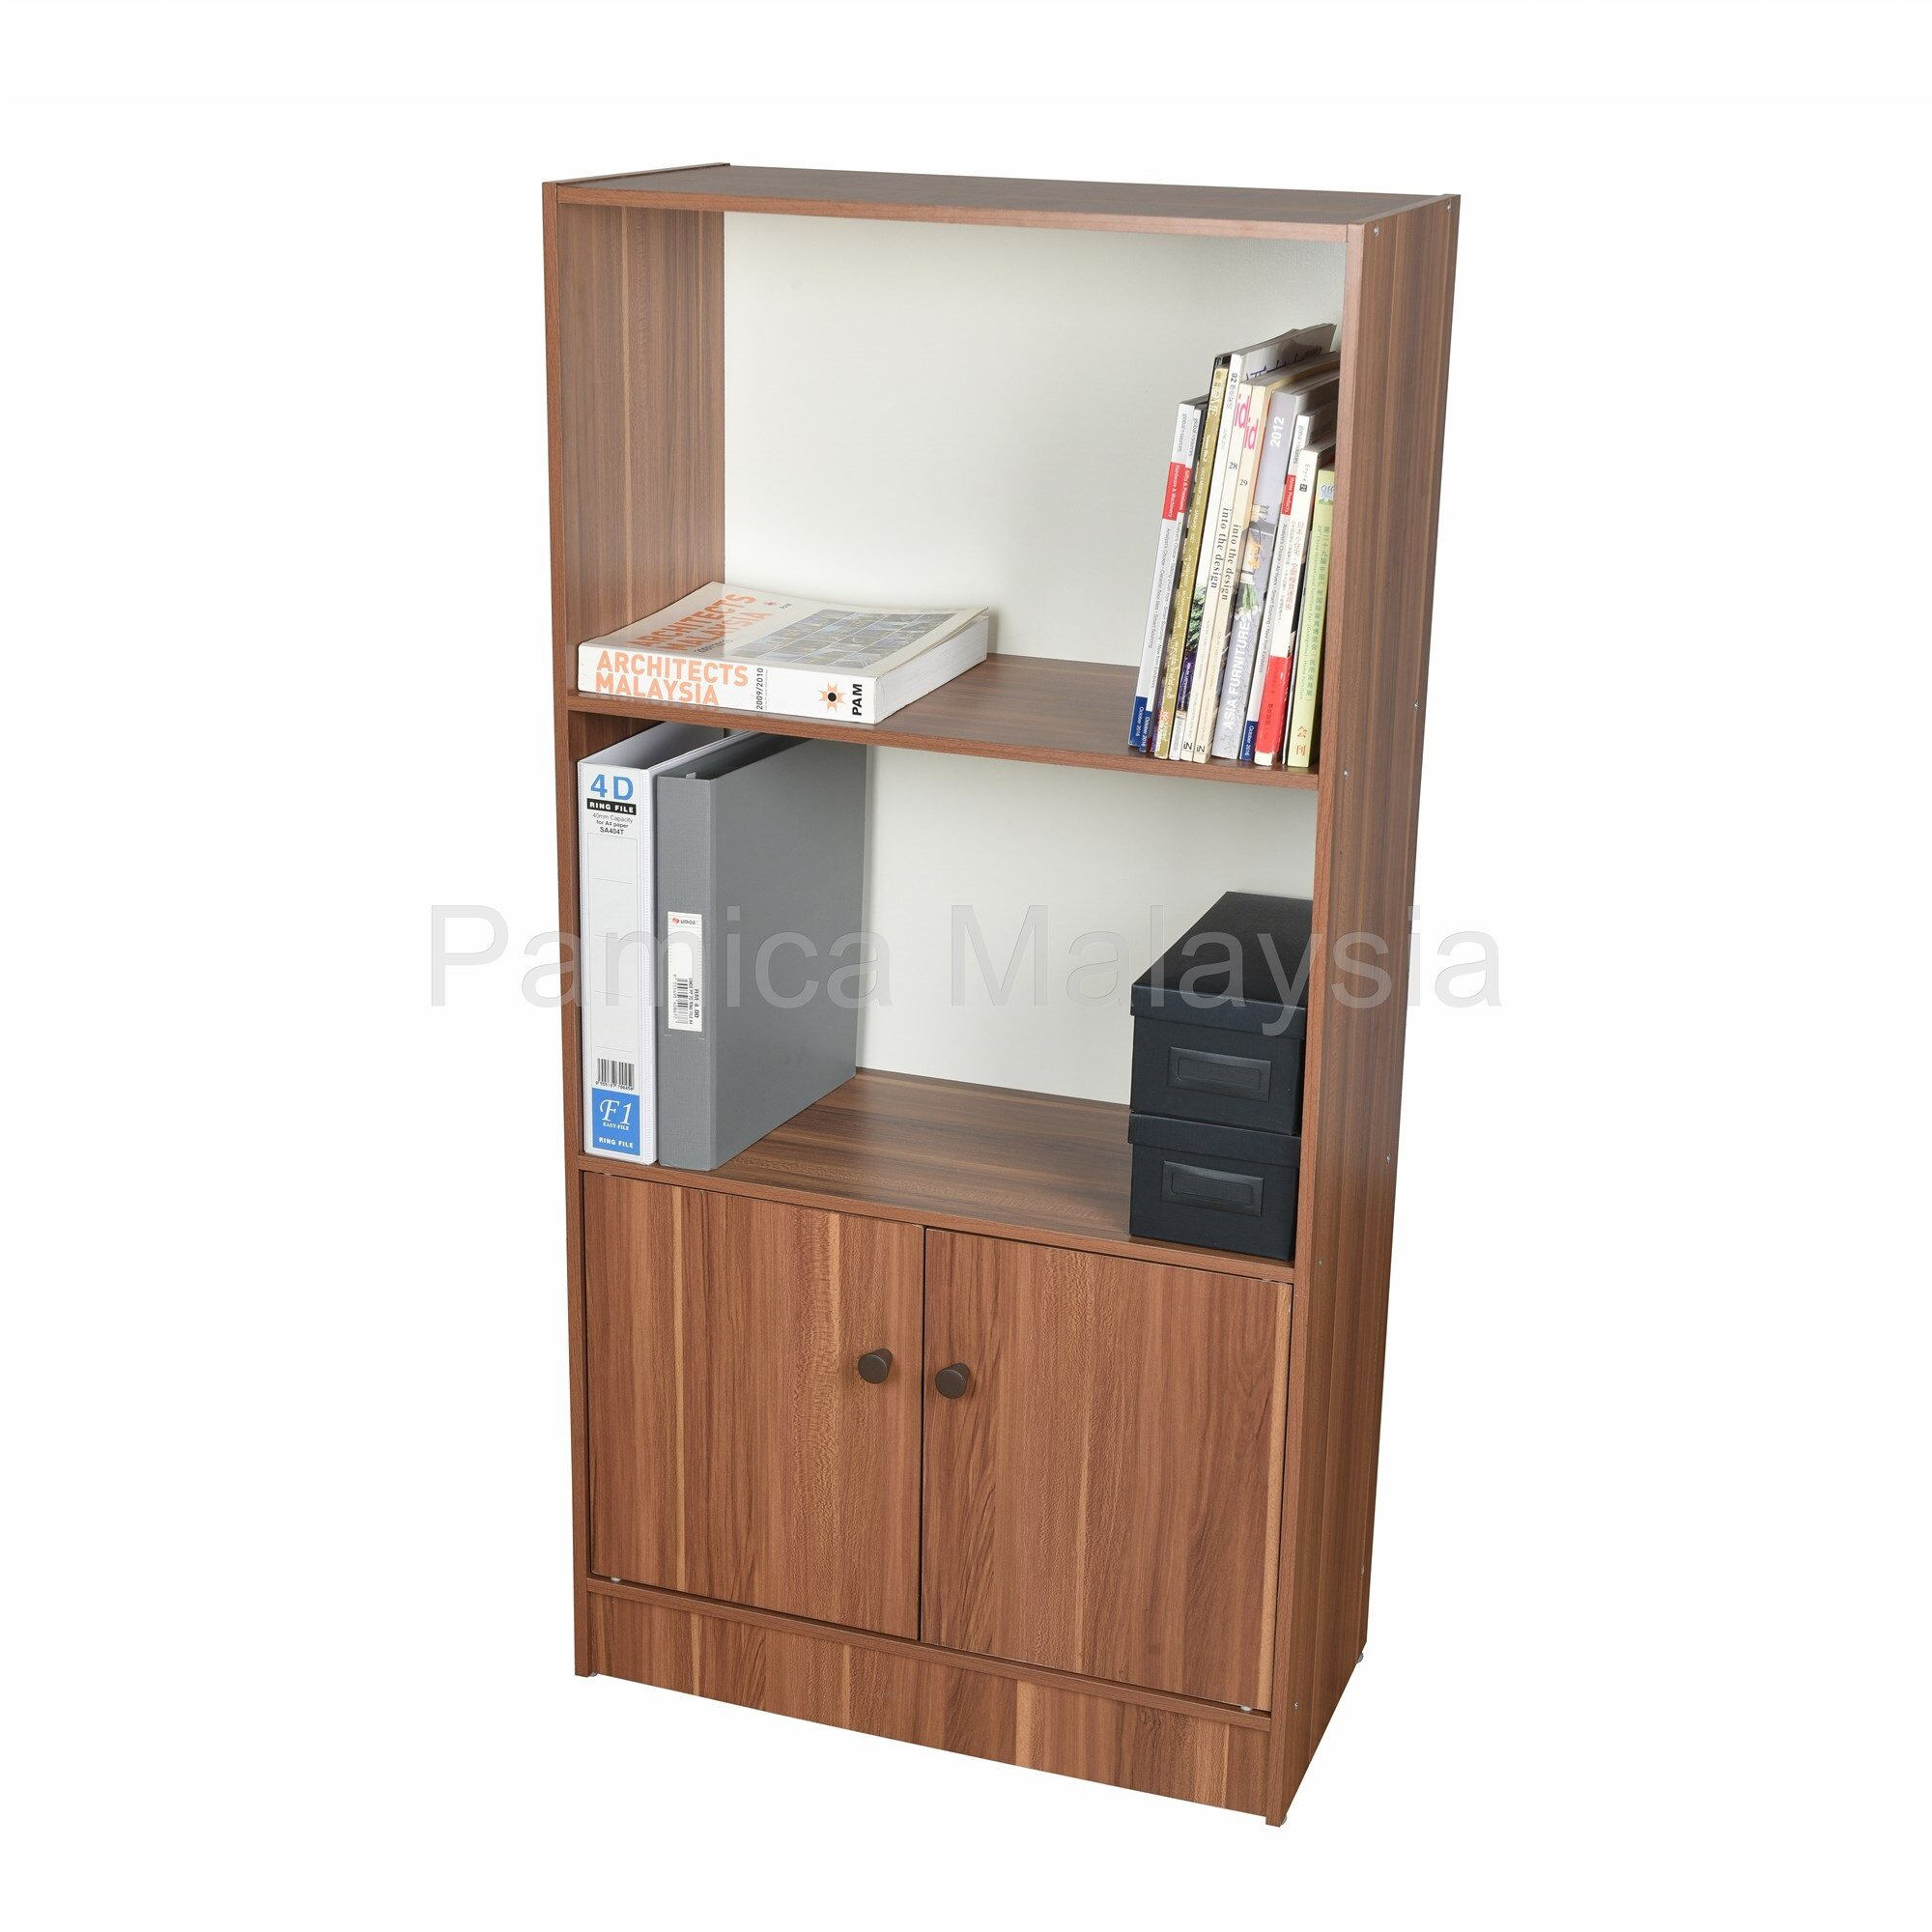 PAMICA SV6122 Roman 3 Tier Book Shelf with Door in Teak/Ivory Finished